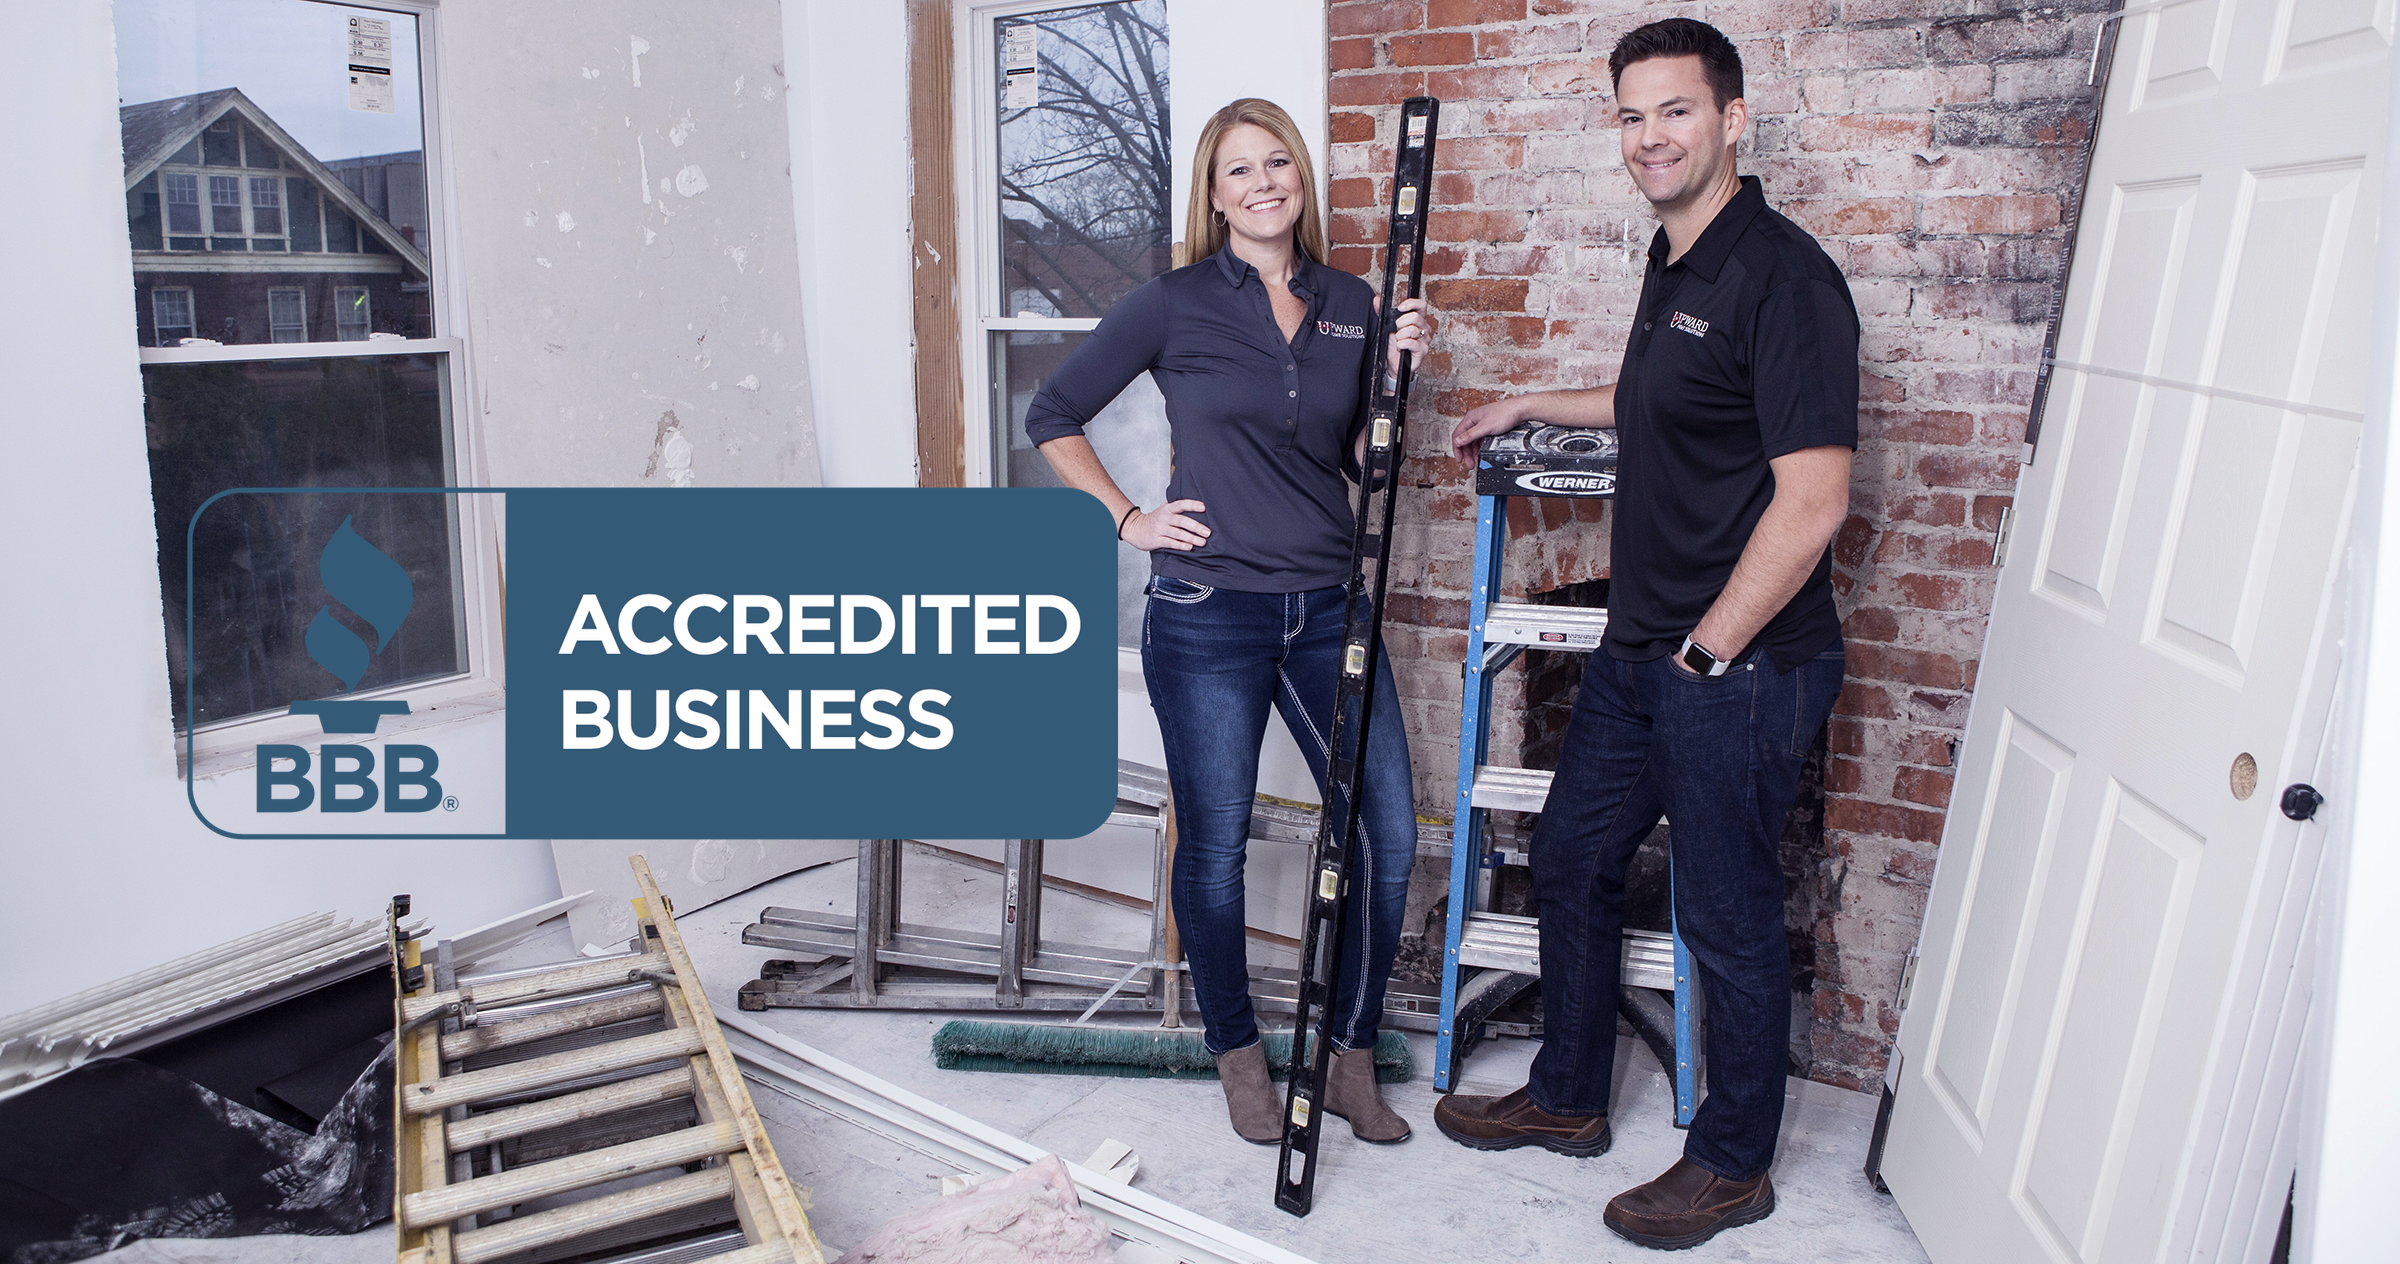 BBB Accredited Business — Upward Home Solutions